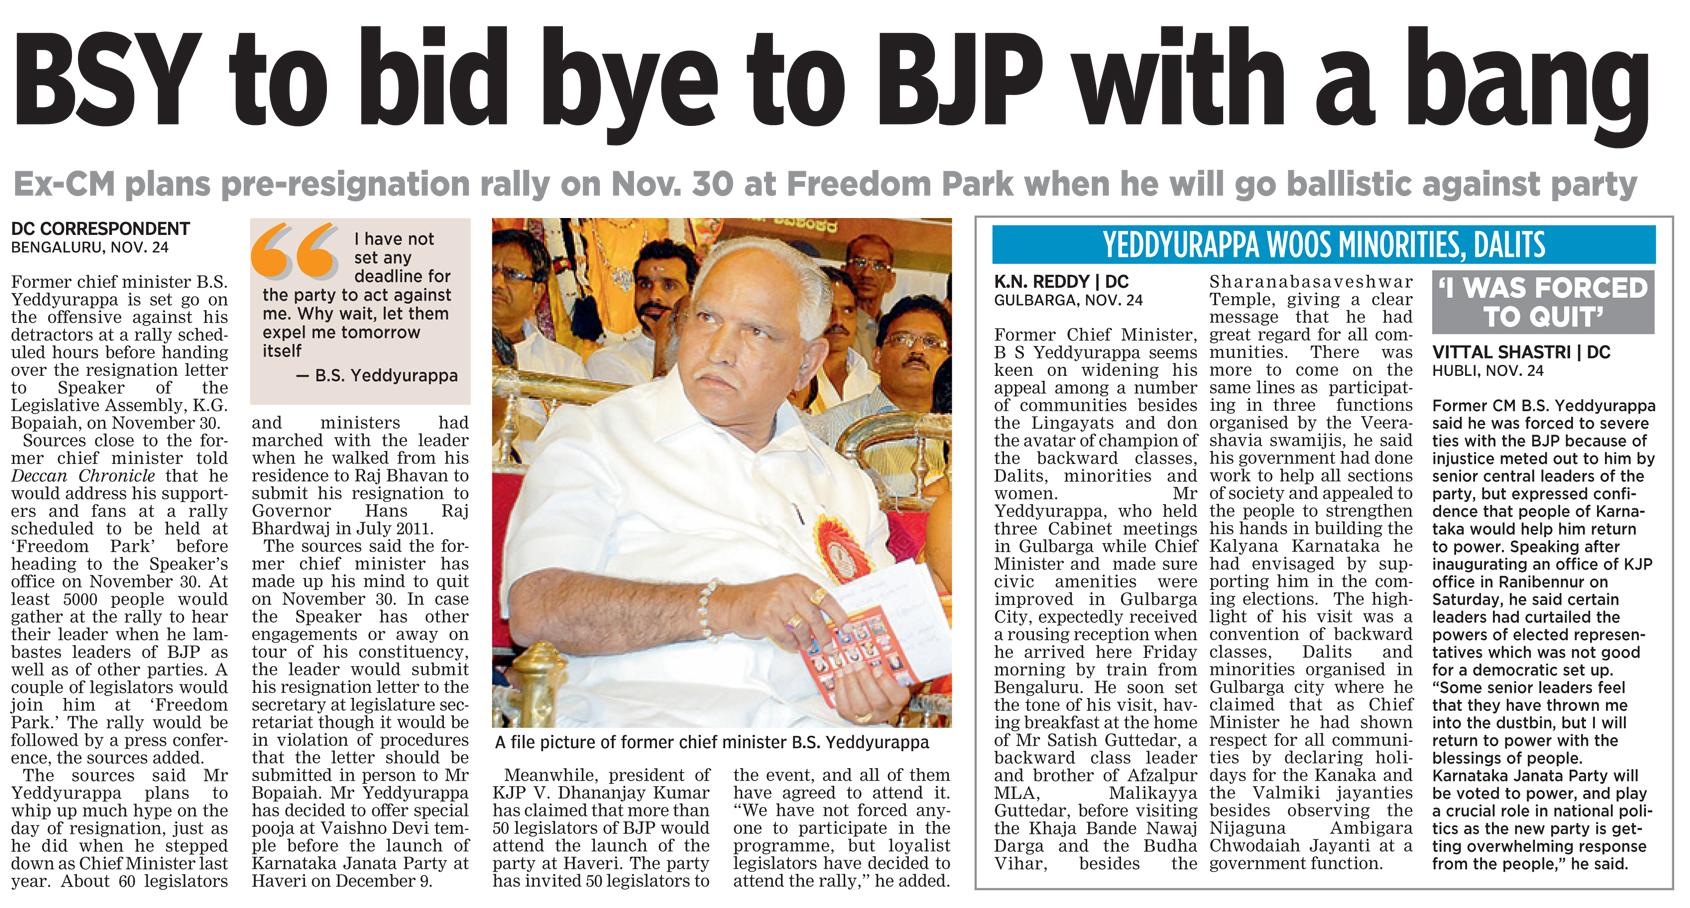 BSY to bid bye to BJP with a bang